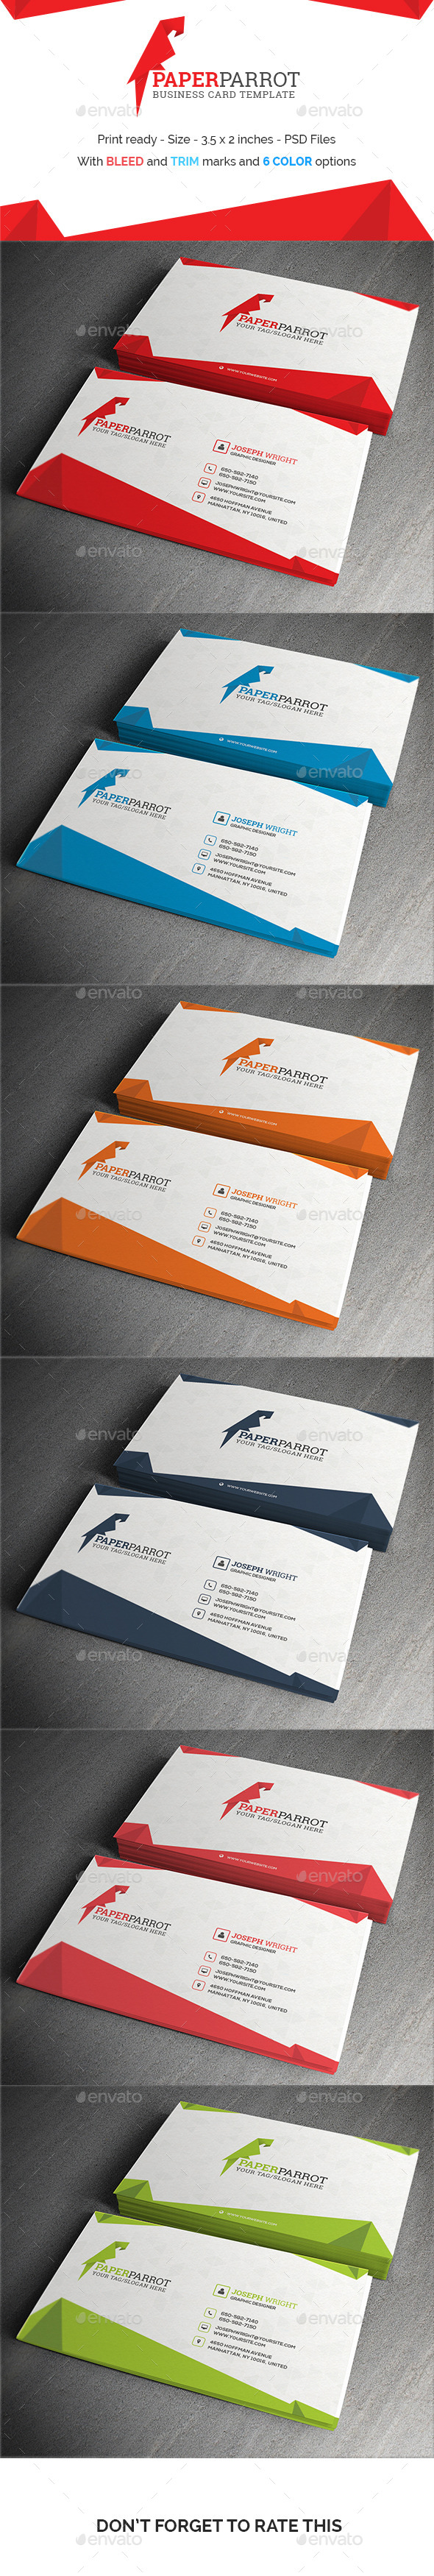 GraphicRiver Paperparrot Business Card Template 11147561